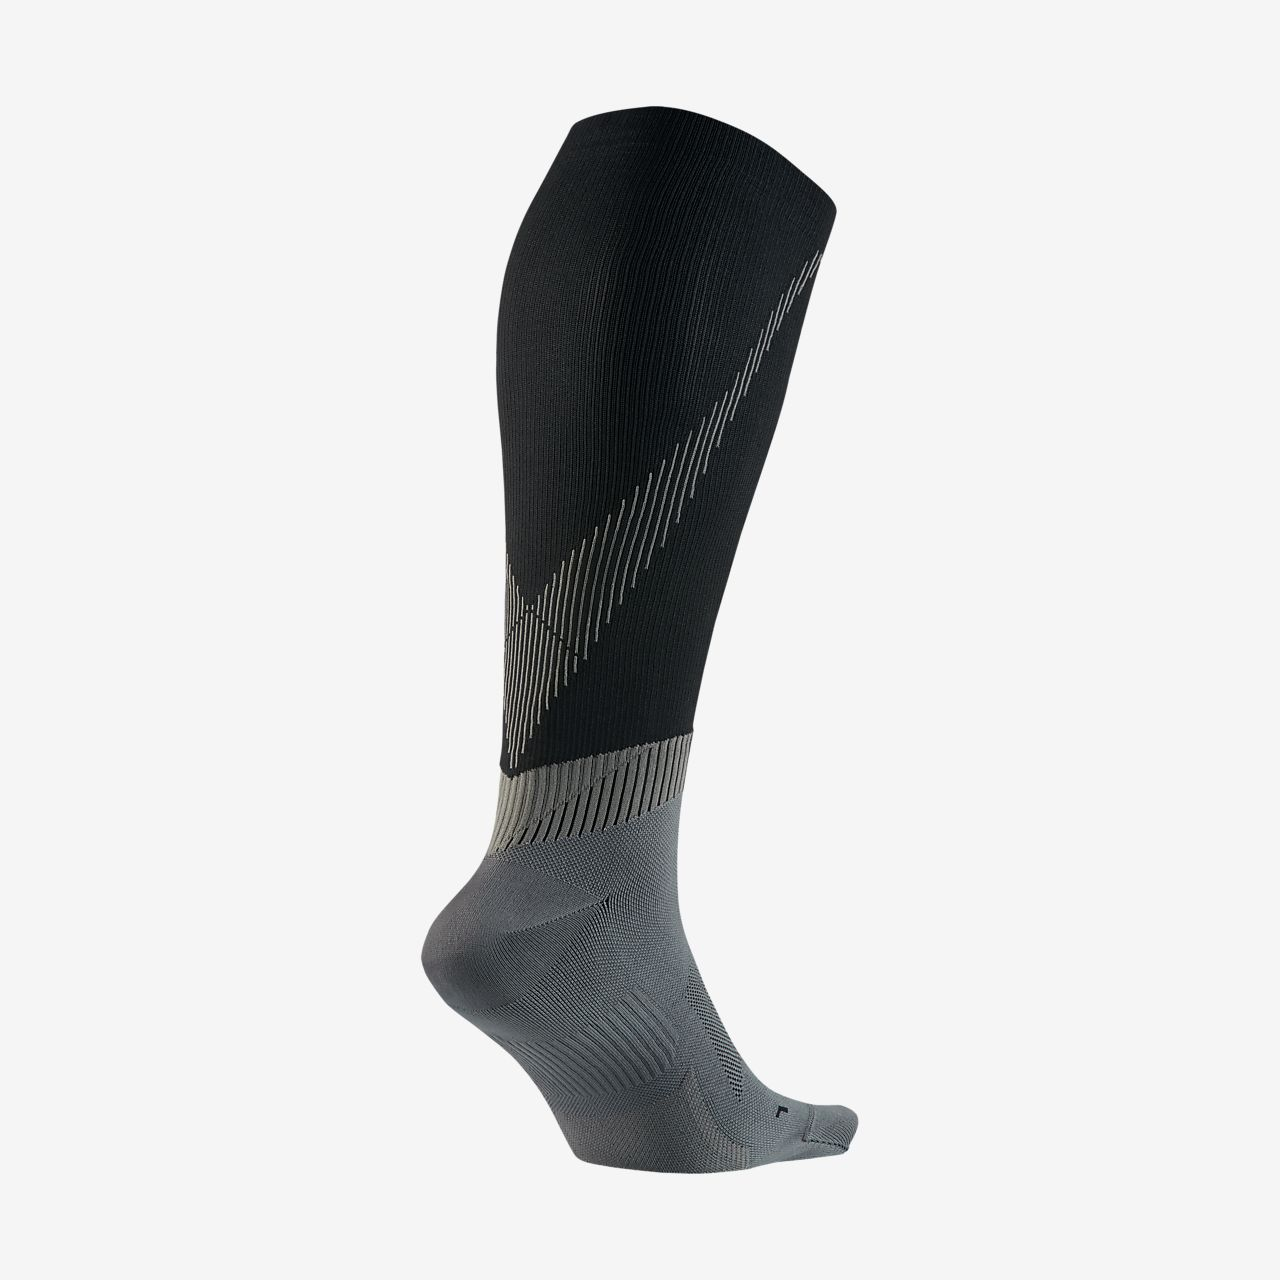 Nike Elite Over-The-Calf Running Socks